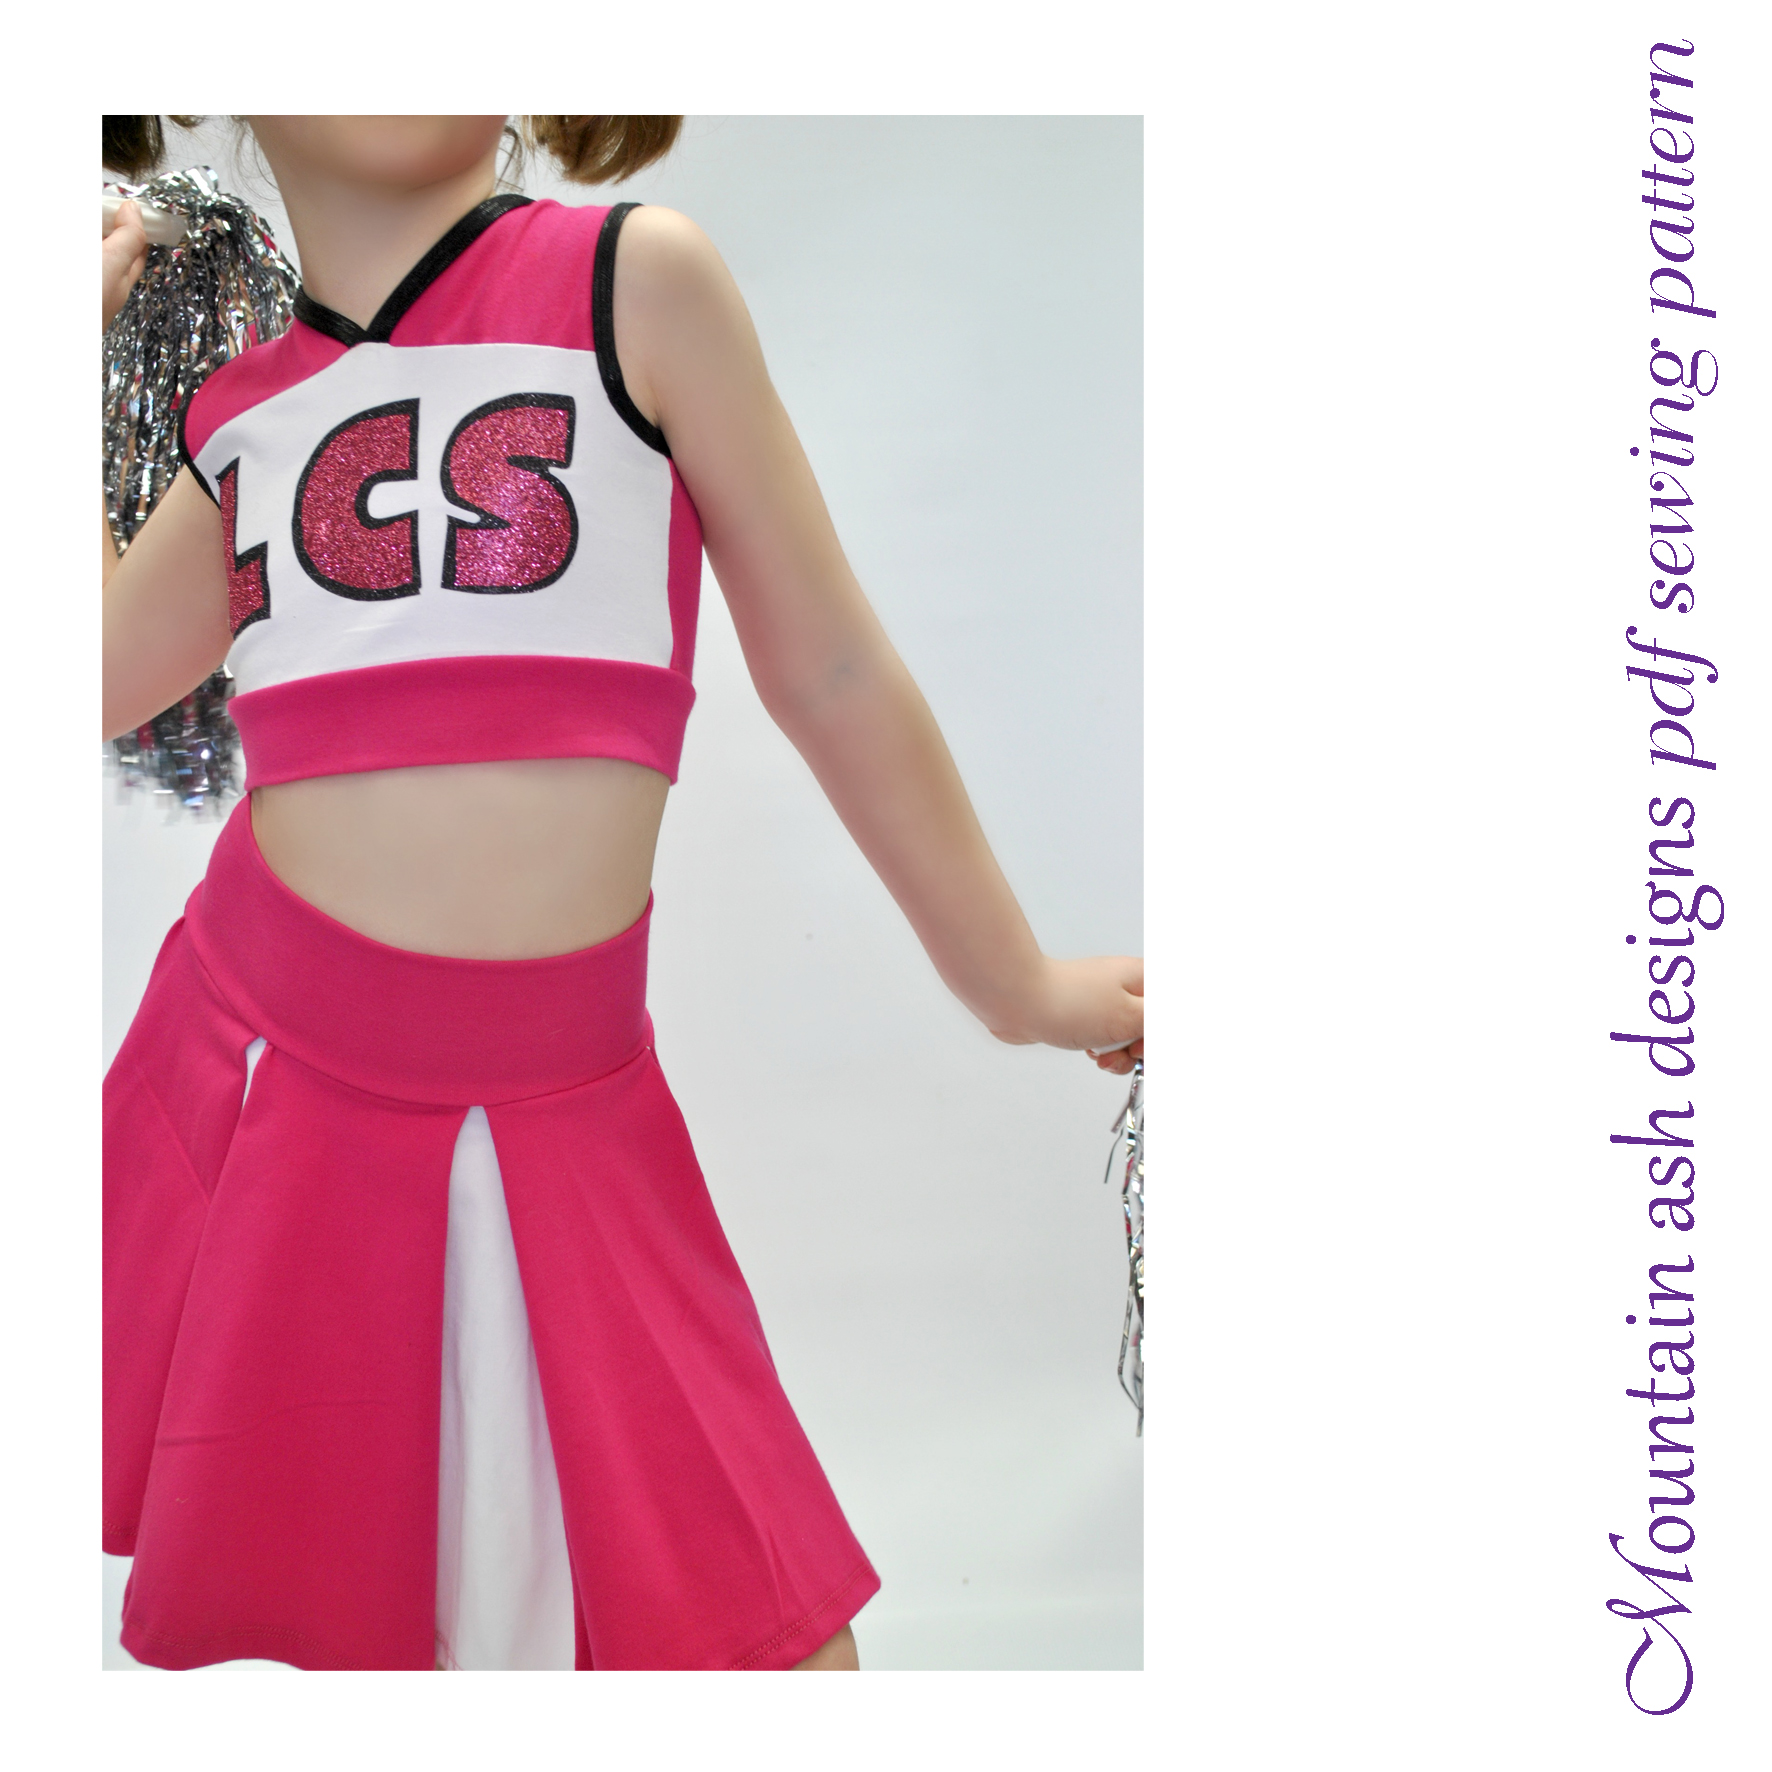 Cheer 1 Cheerleading Costume Sewing Pattern in Girls Sizes 2-14